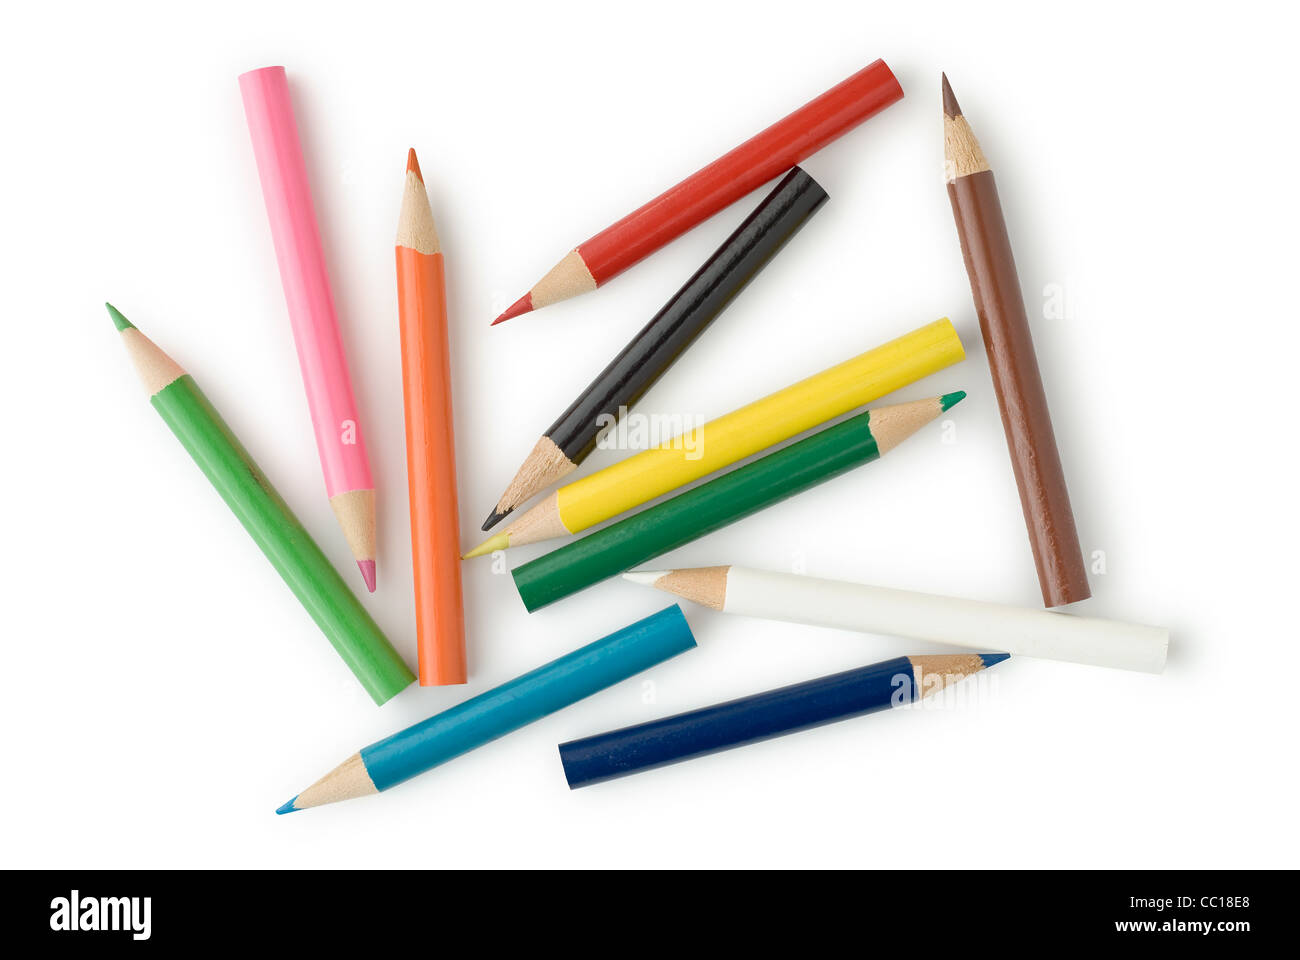 Multi Colored Pencils for School or Professional Use - Stock Image